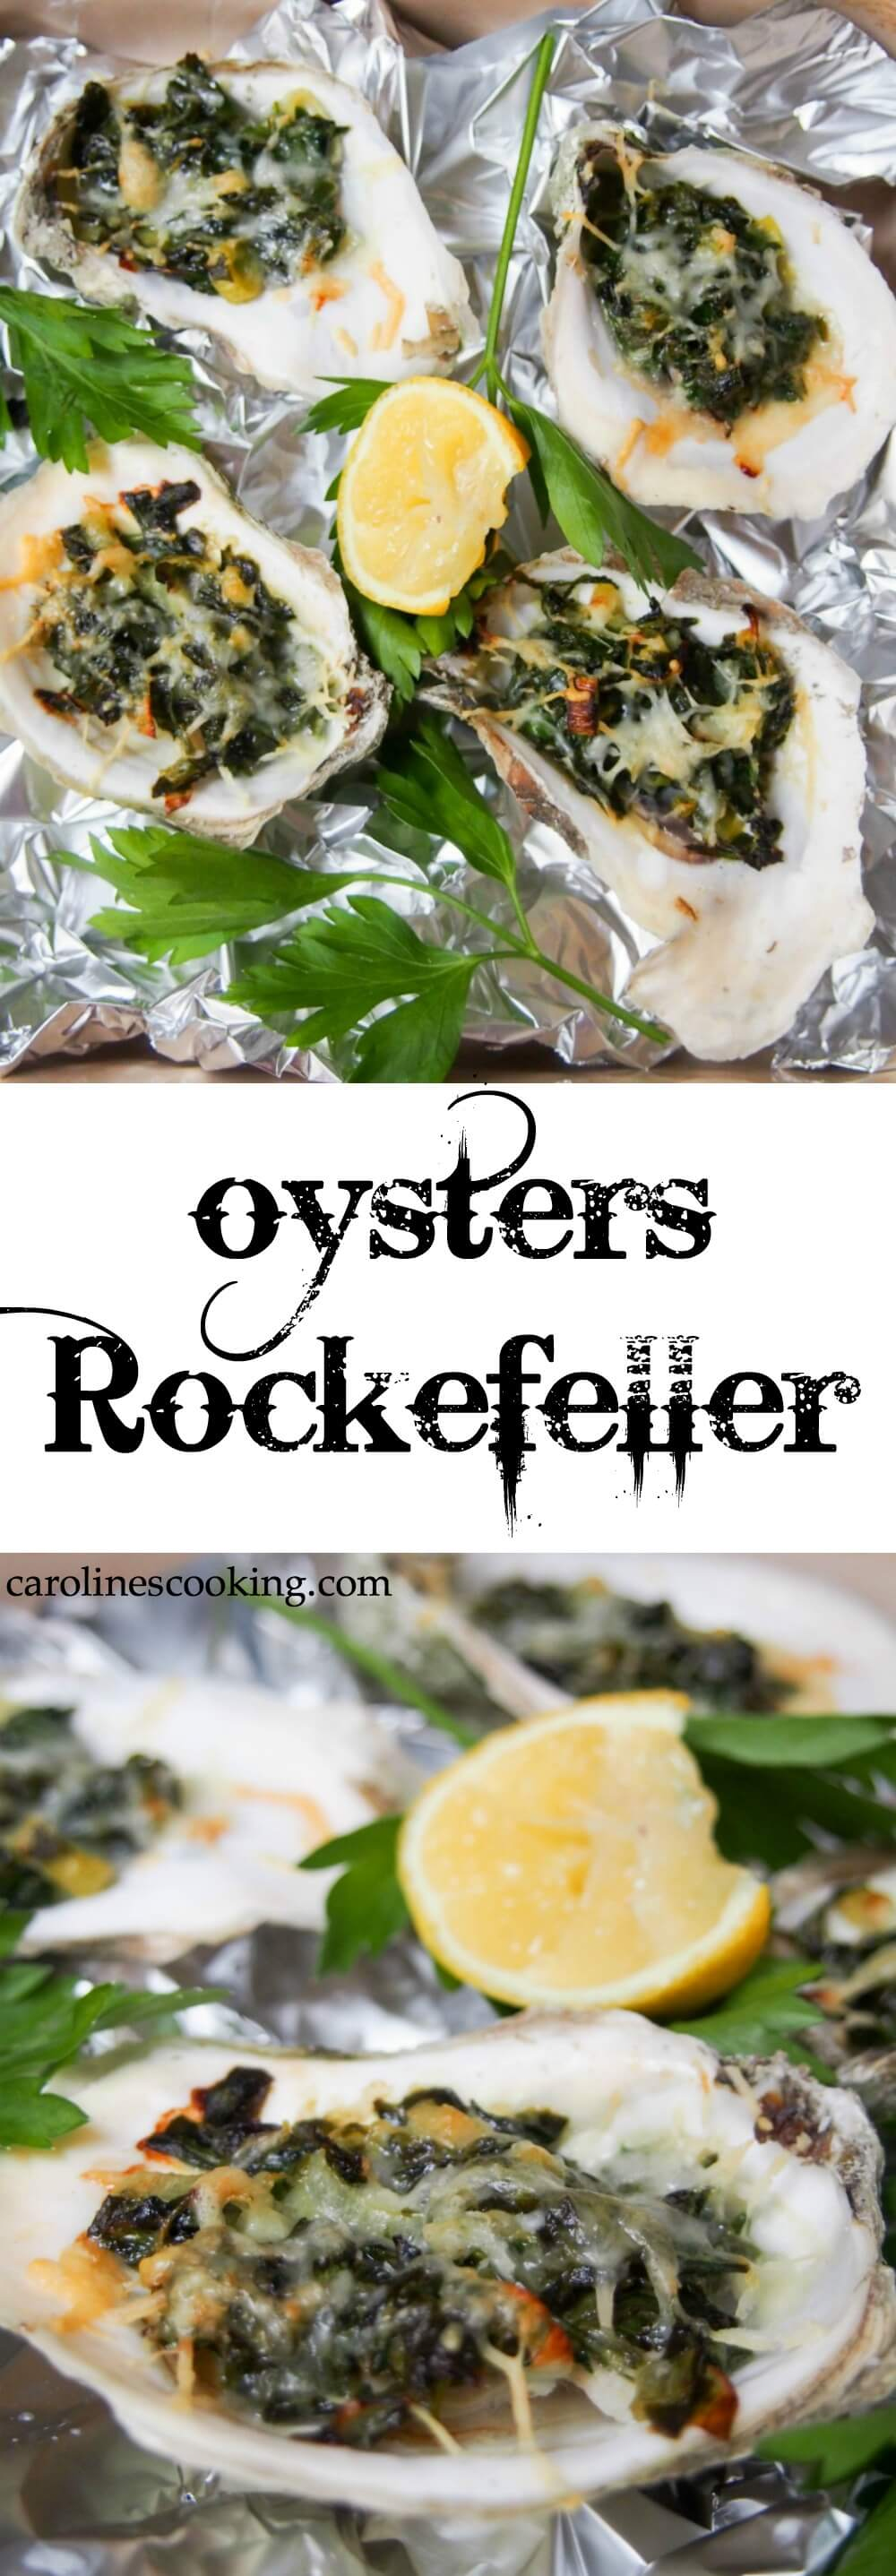 Oysters Rockefeller are a classic New Orleans appetizer with a tasty topping baked over oysters in their shell. Here they're lightened up but packed with flavor in the spinach-based topping. Perfect for date night, a fancy dinner party or any excuse. Includes video tutorial with how to shuck an oyster.